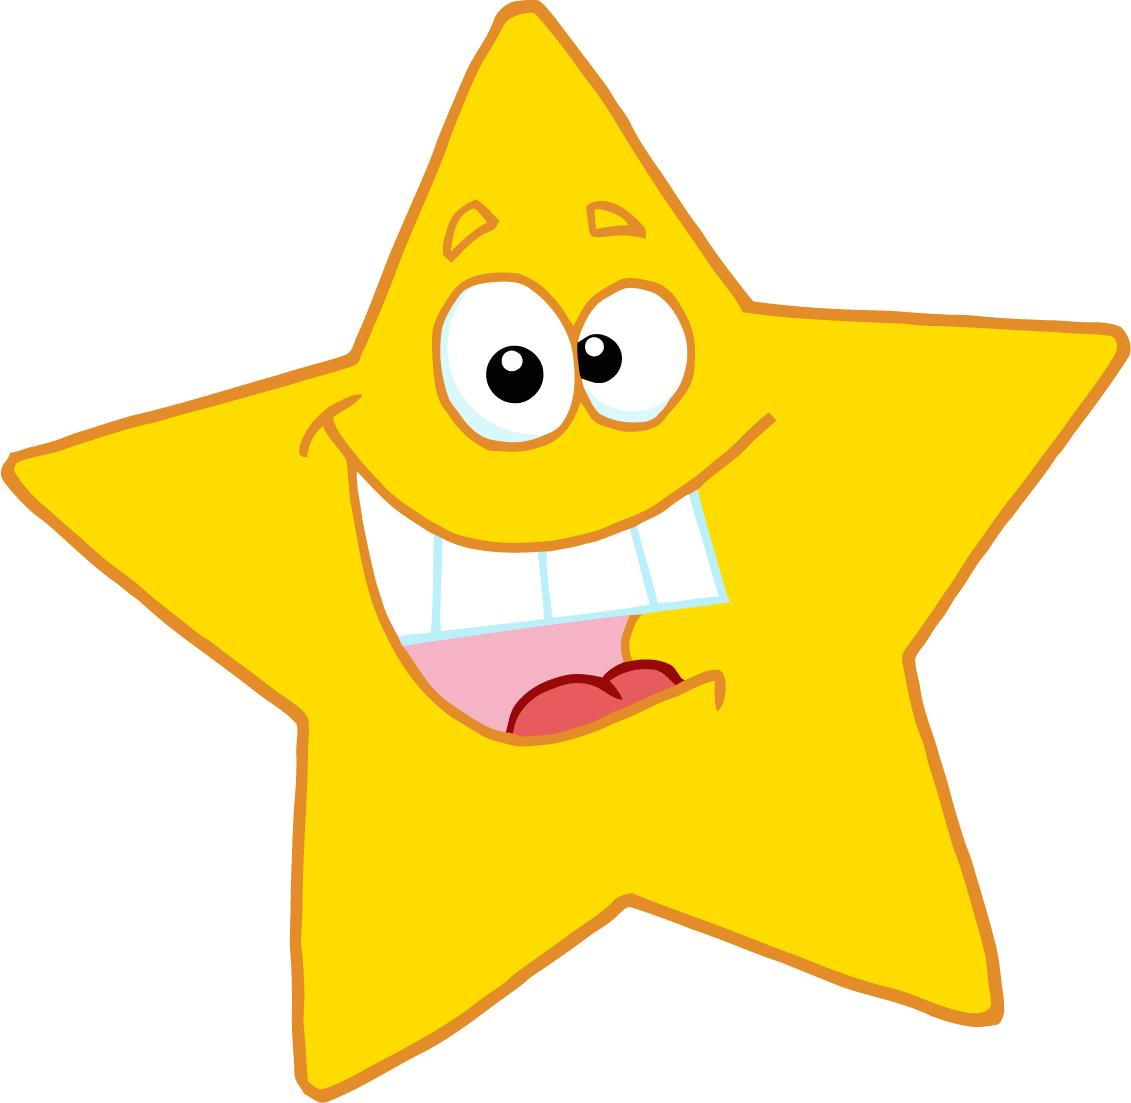 1131x1103 Star Clip Art Outline Free Clipart Images 2